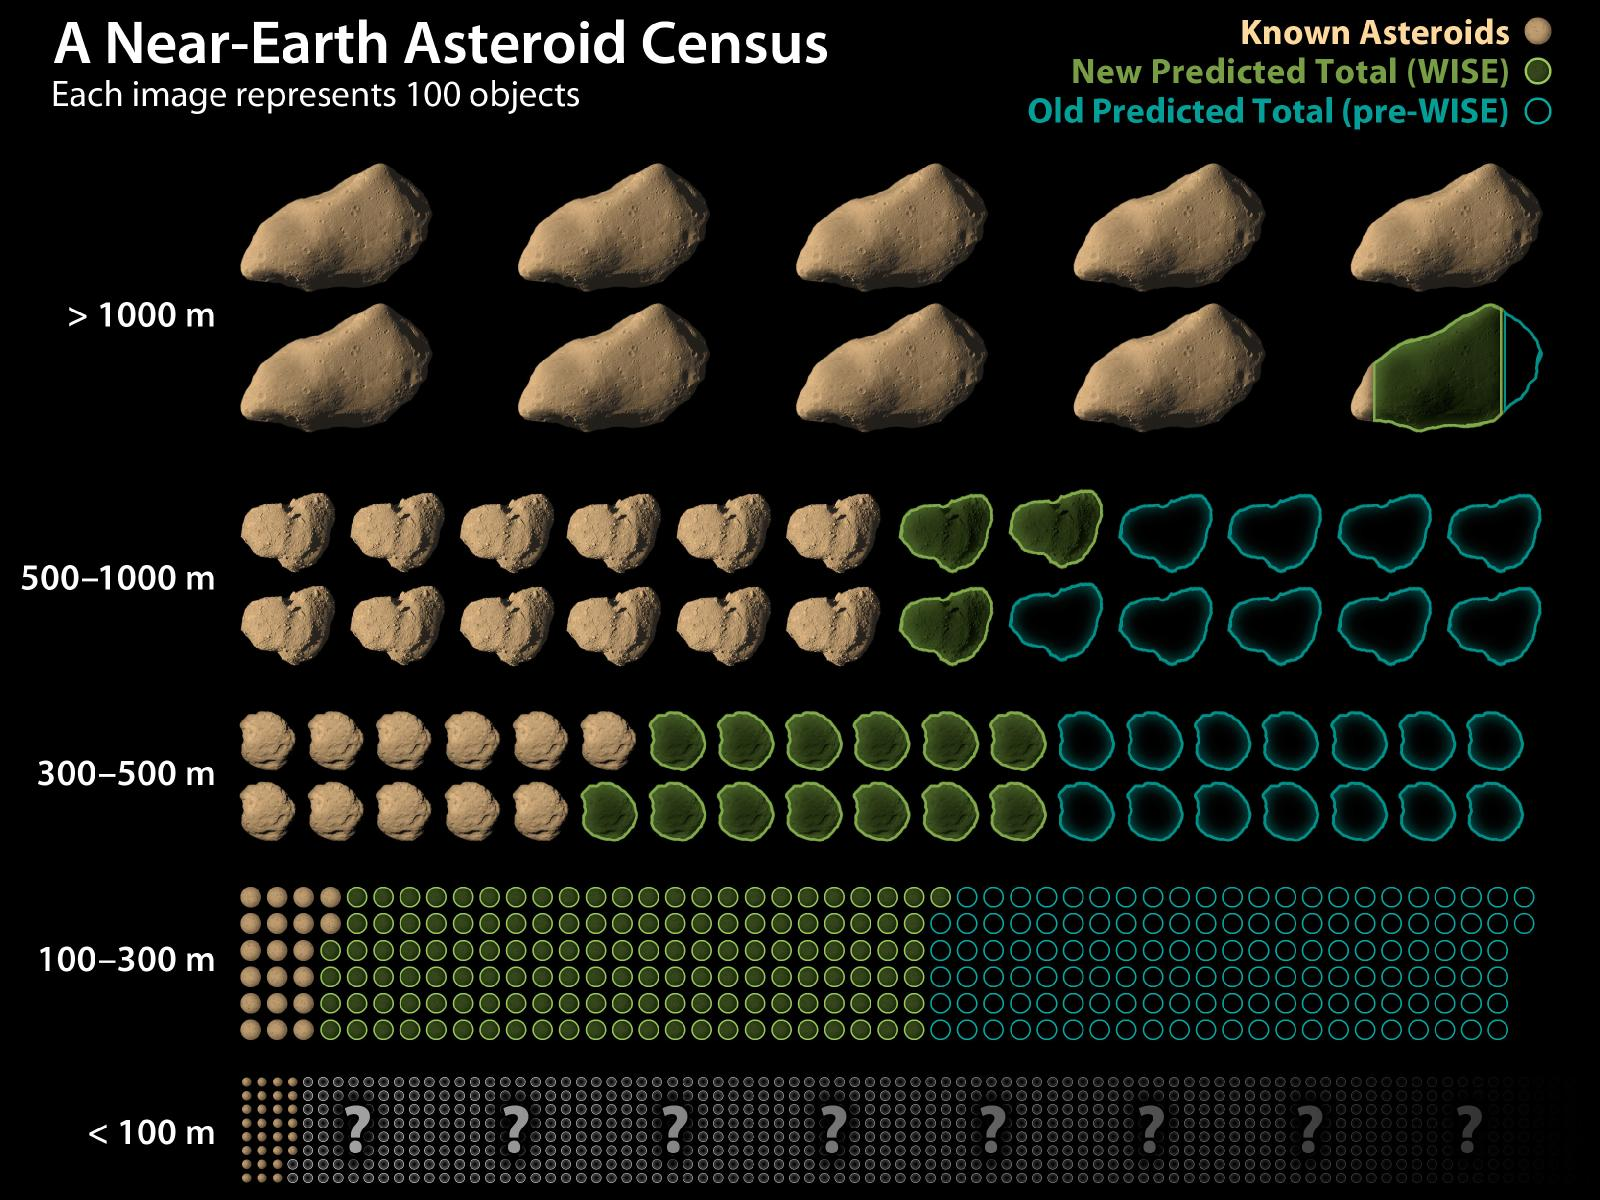 Asteroids,